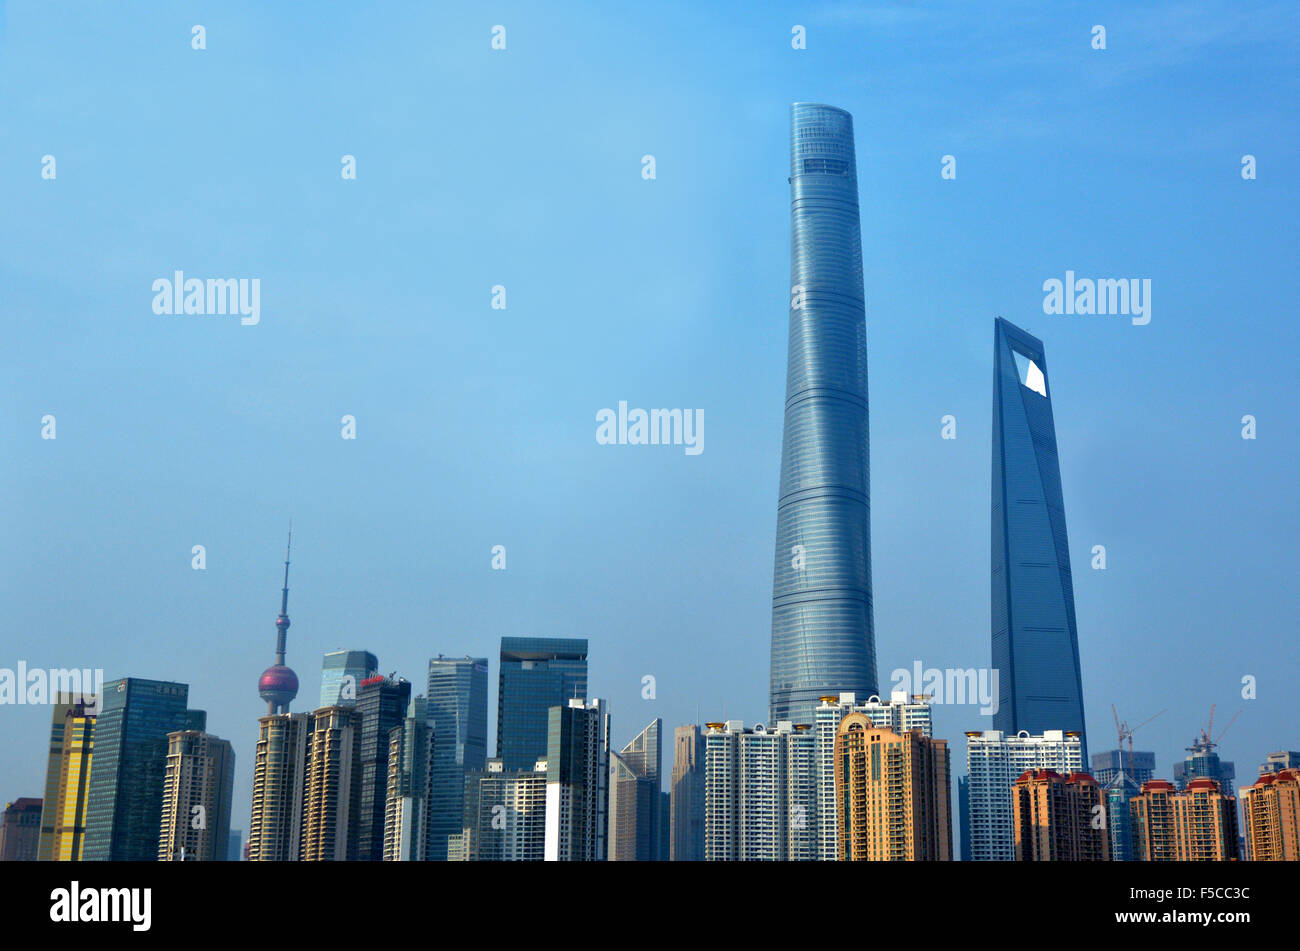 SHANGHAI, CN - MAR 17 2015:Pudong New Area skyline in Shanghai, China.Pudong is home to the Lujiazui Finance and - Stock Image